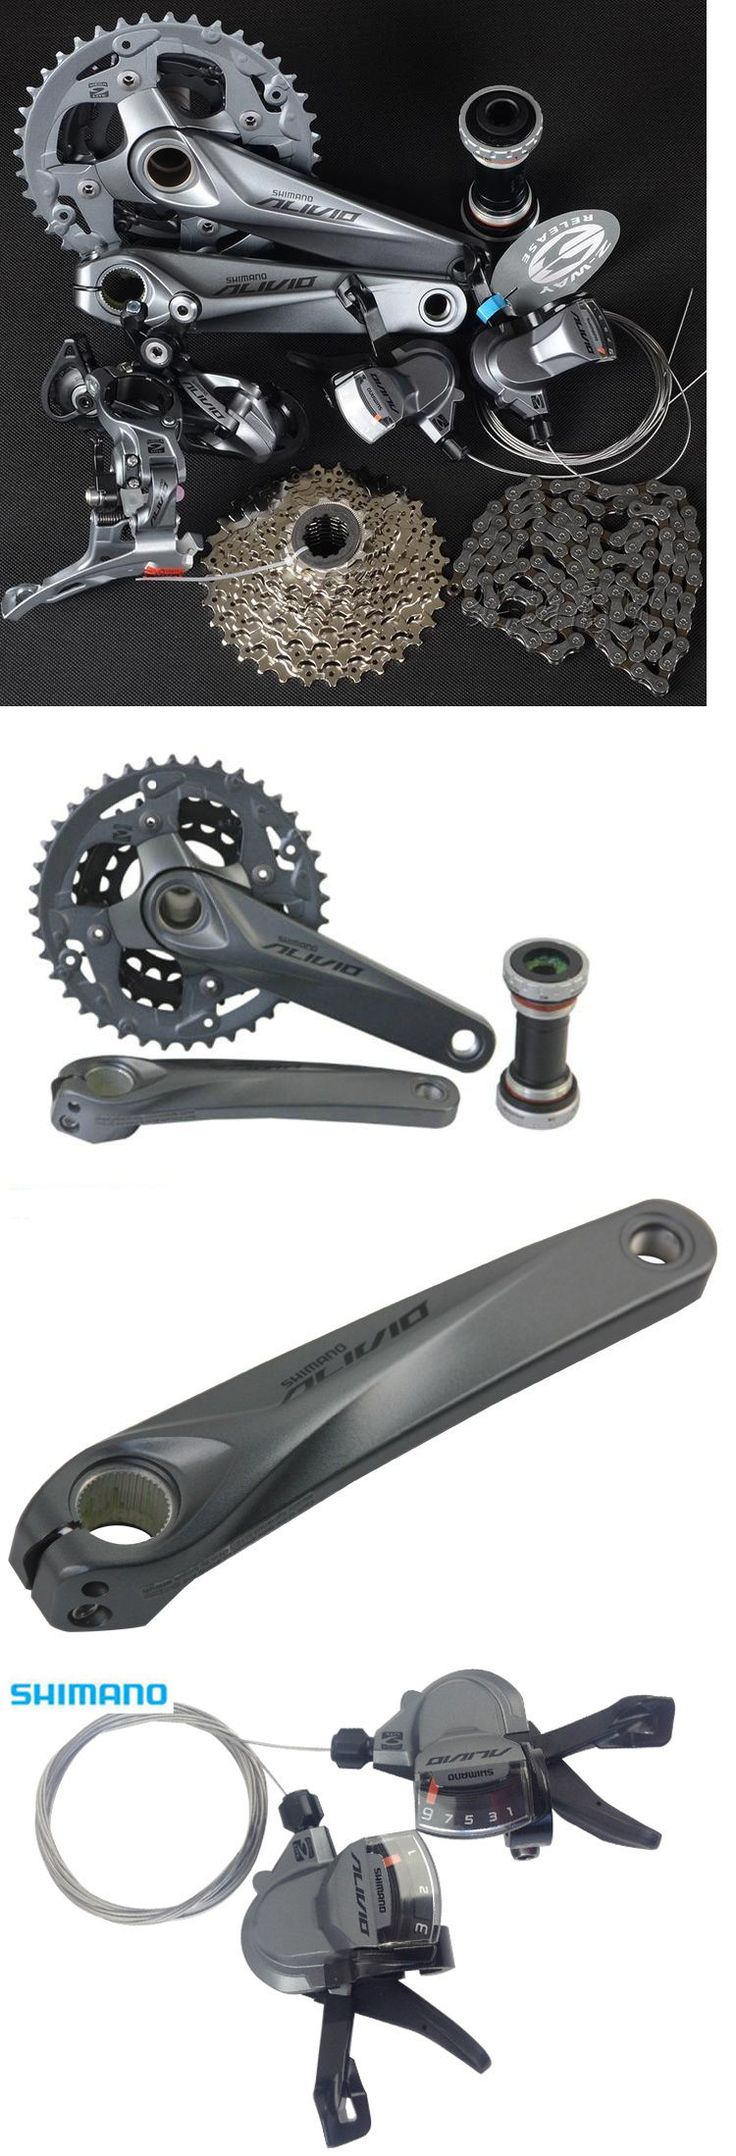 Build Kits and Gruppos 109120: New Shimano Mountain Bike Alivio M4000 Group Set 3X9 27 Speed 7 Pcs Crank 175Mm -> BUY IT NOW ONLY: $164.99 on eBay!